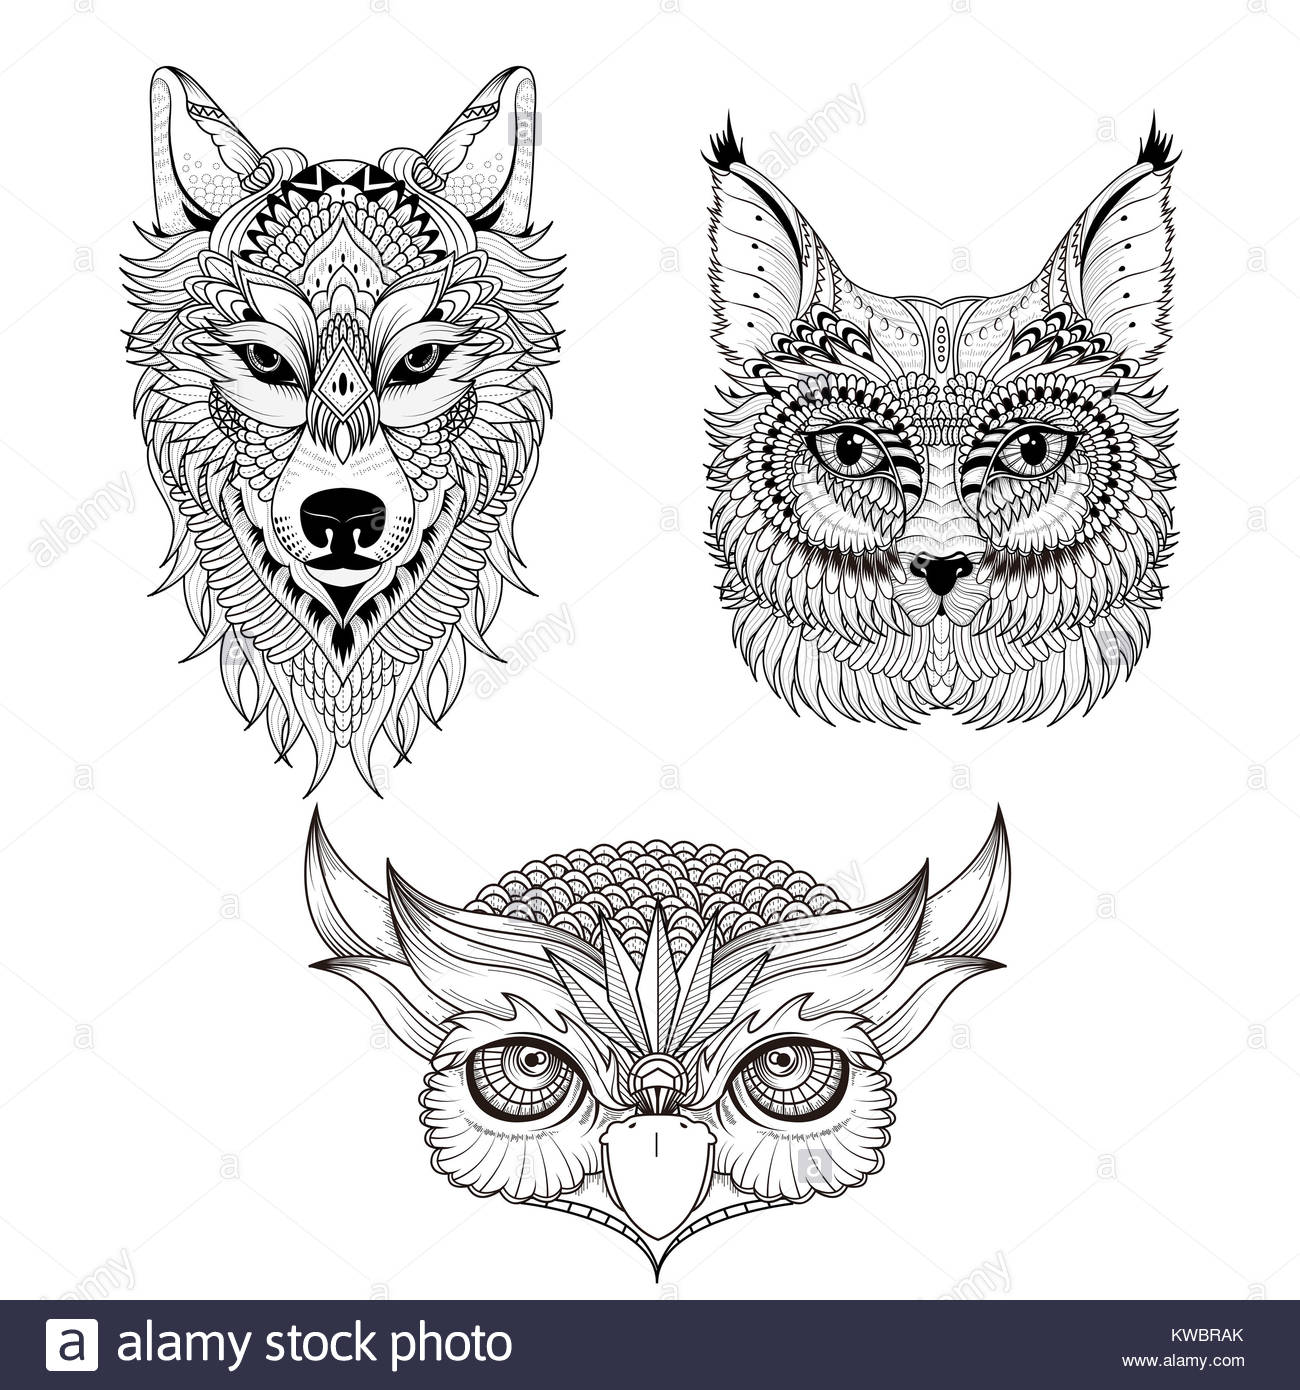 Wolf Head Isolated In White Stockfotos & Wolf Head Isolated In White ...